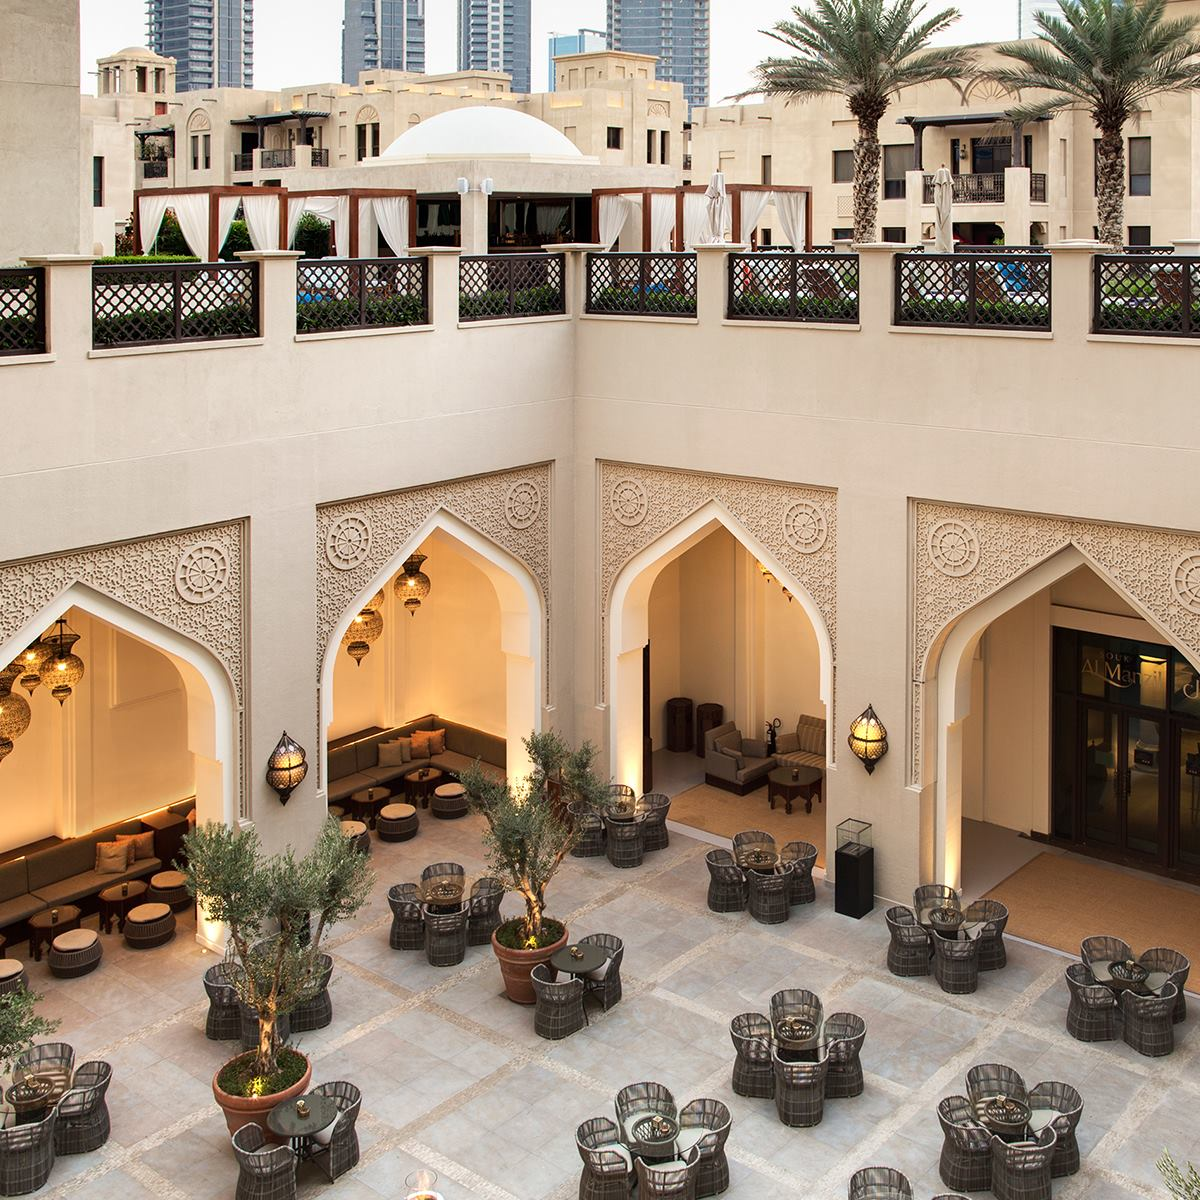 Ramadan 2015 5 best iftars in dubai dubai blog for Best hotels in dubai 2015